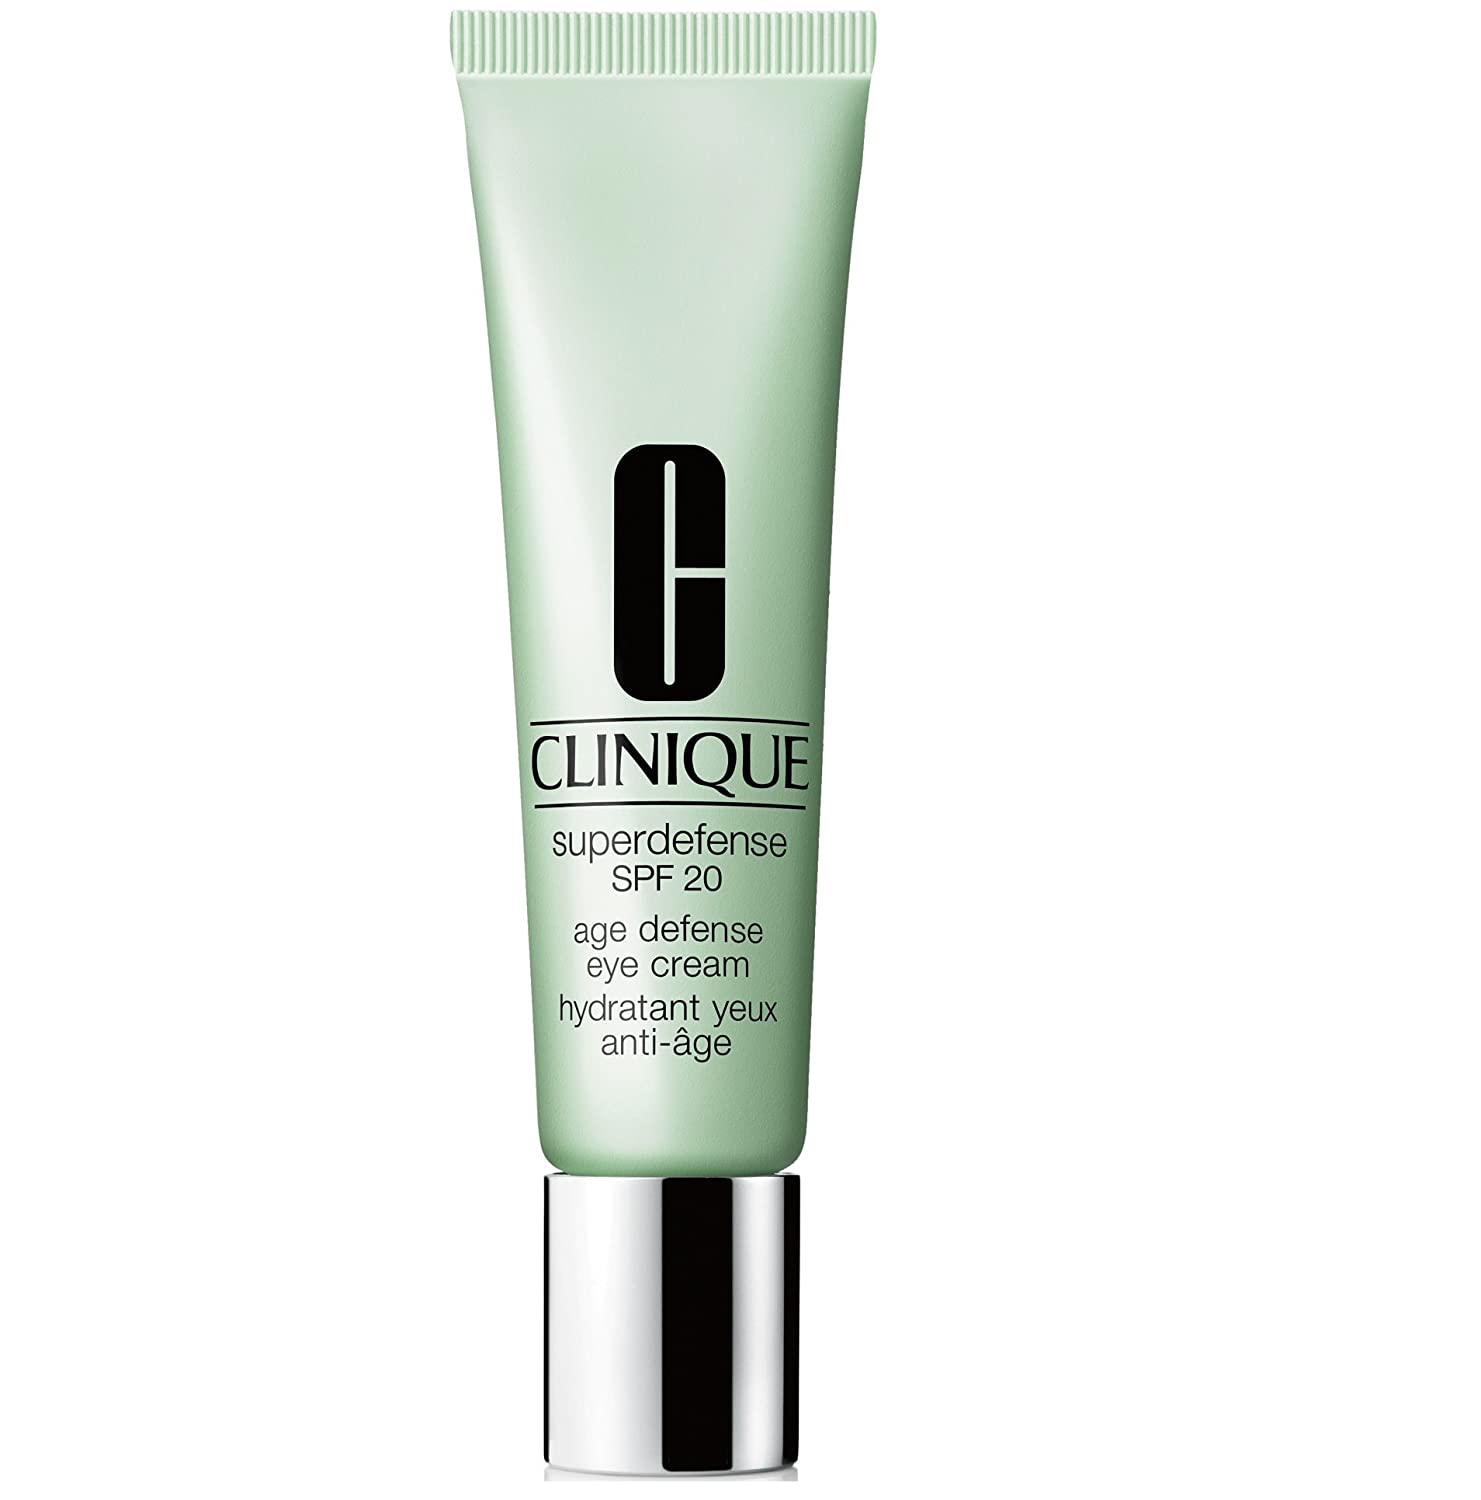 Clinique Superdefense SPF 20 Age Defense Crema antirughe 15ml/0.5oz GIVPLAF0107502N CLI00060